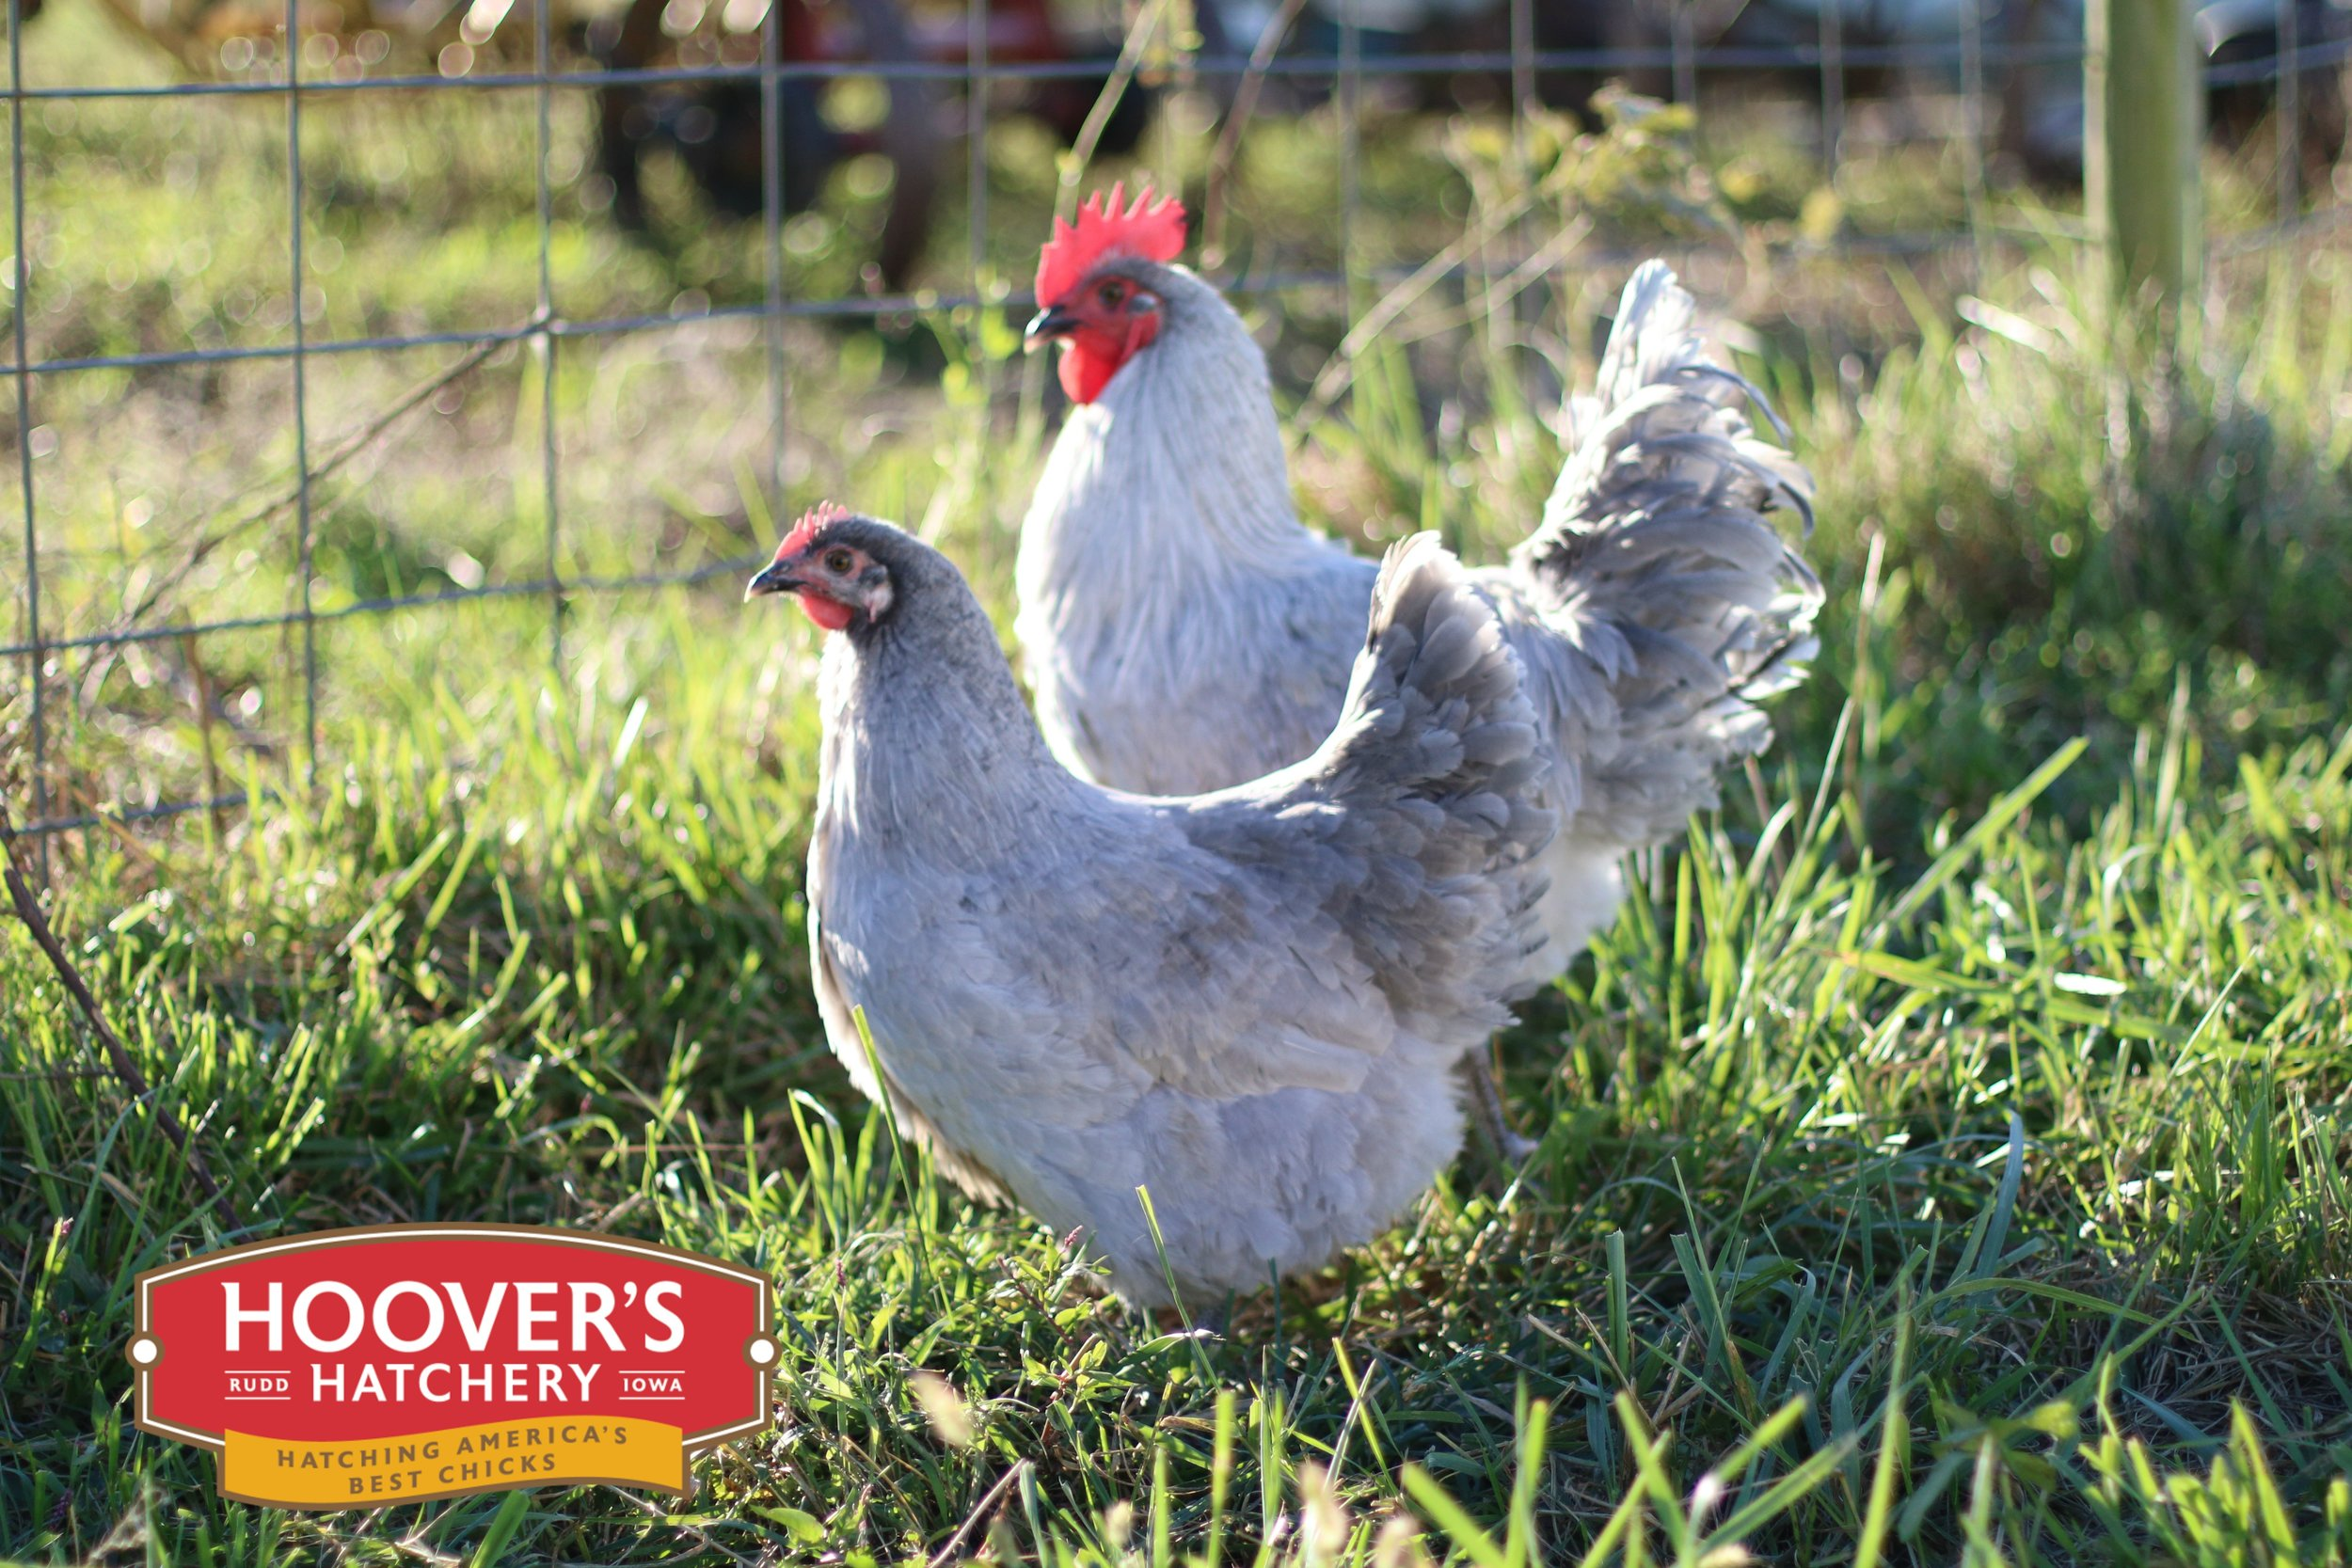 Lavender Orpington - One of the best breeds for newcomers to chickens, and for families with young children. Named for the English town where they were developed, Orpingtons come in several feather colors but all are big quiet birds with fluffy feathers that keep them toasty warm during frigid weather. Lavender Orpingtons are sold in straight run only. APPROX. 220 MEDIUM EGGS/YEAR | EGG COLOR: BROWN | MATURE WT: MALE 8.5 LBS. FEMALE 7 LBS.